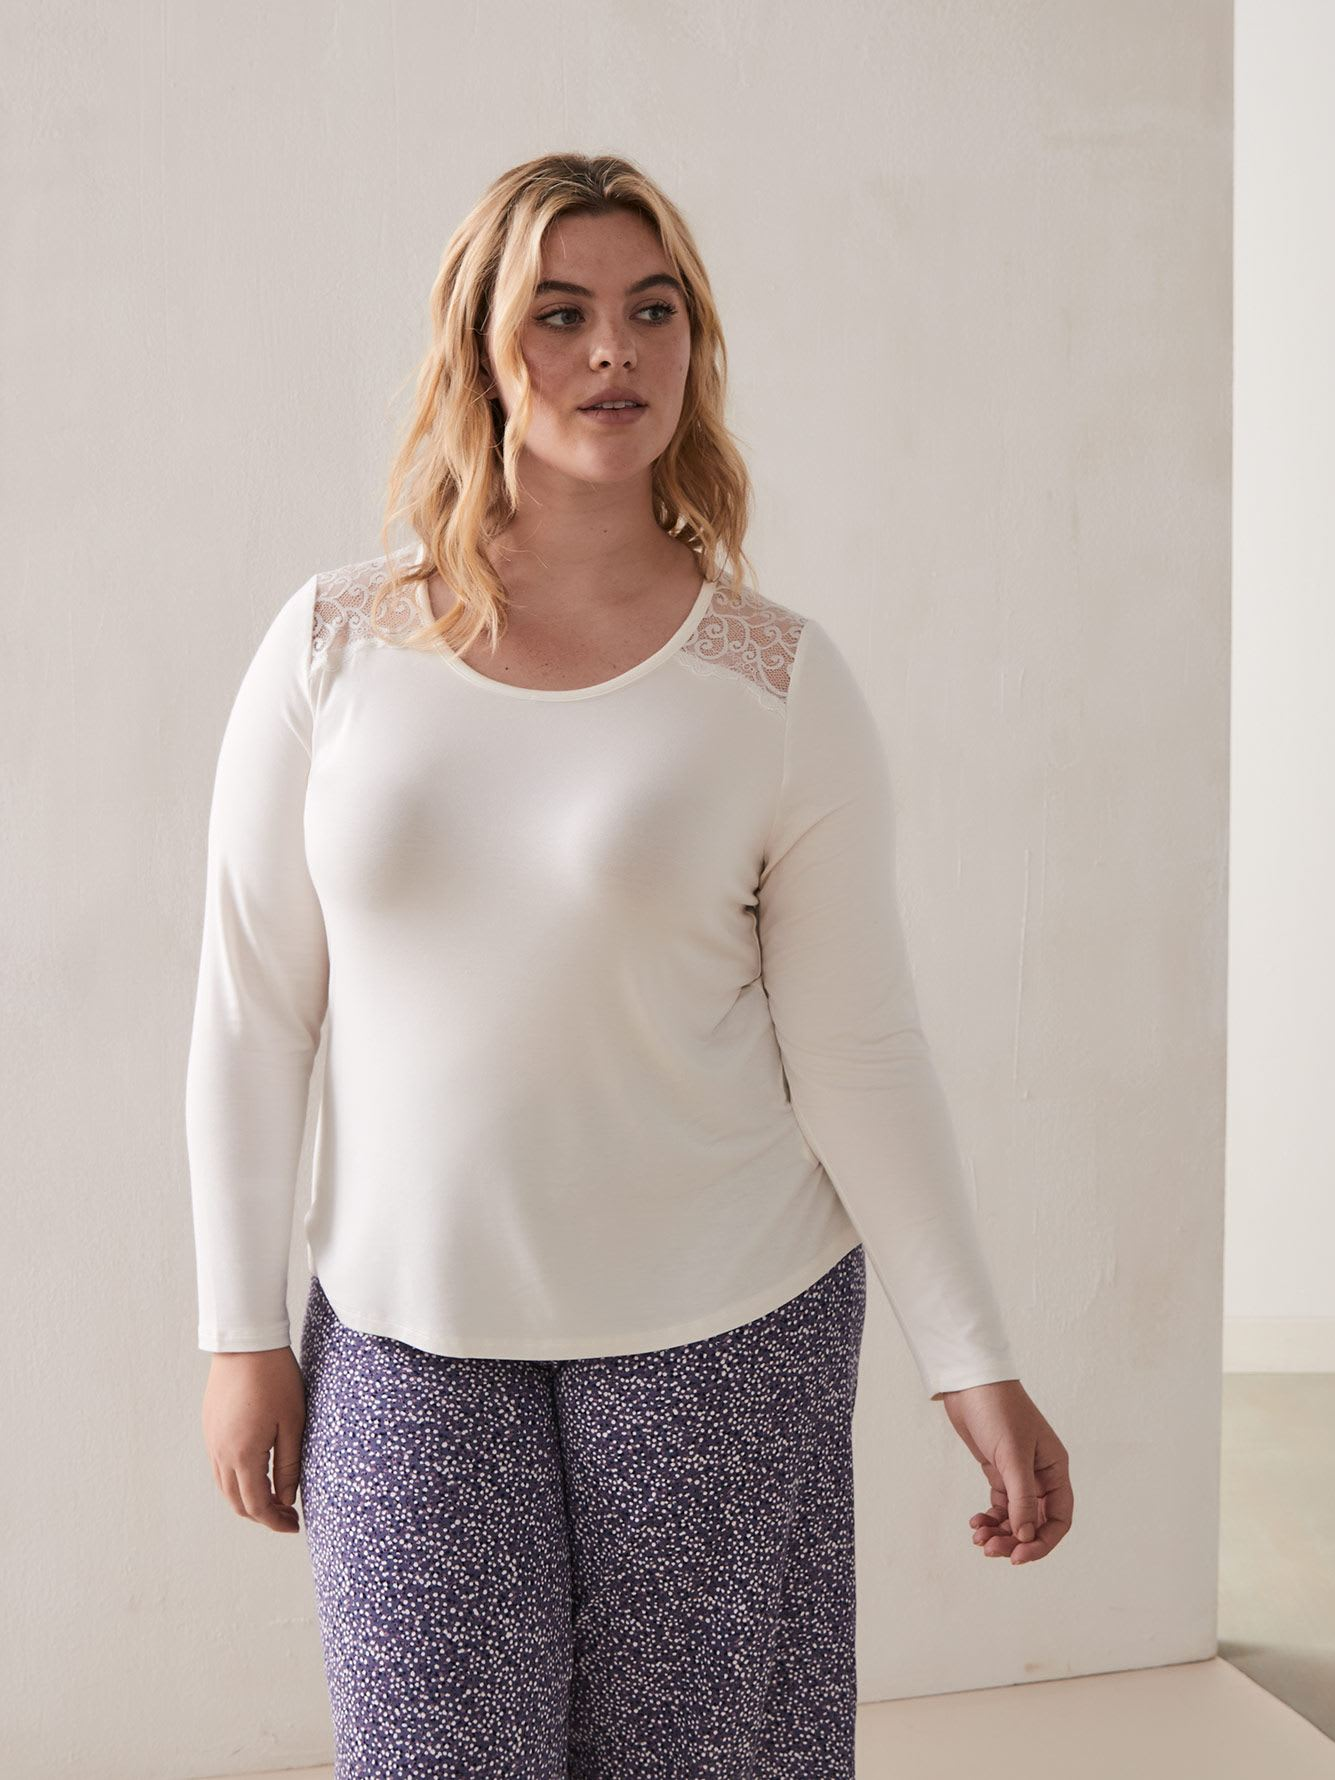 Scoop Neck Long Sleeve Tee with Lace Inserts - Déesse Collection